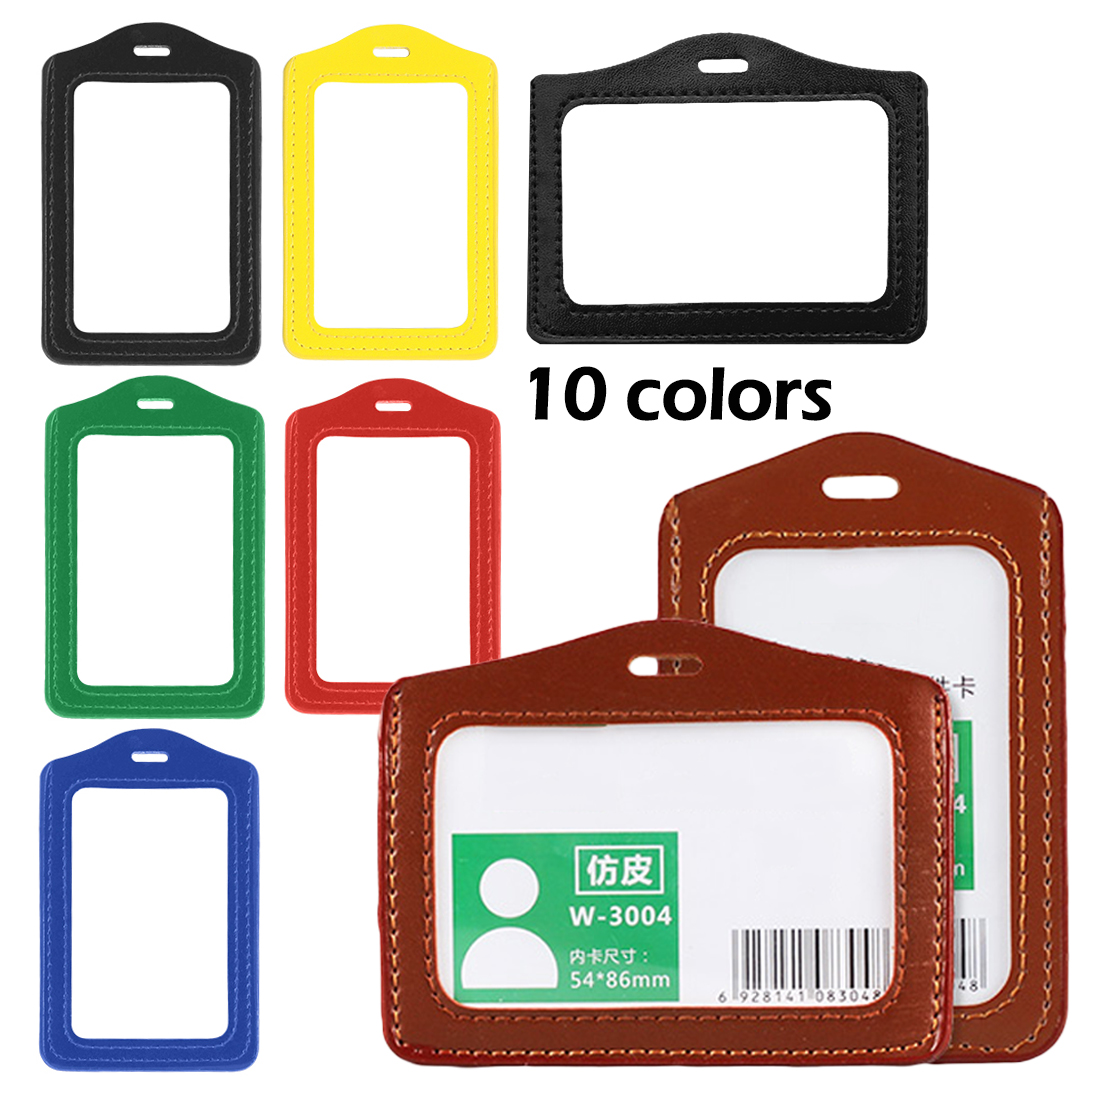 Durable ID Color Lanyard Clear With Case Holder Hole And Border